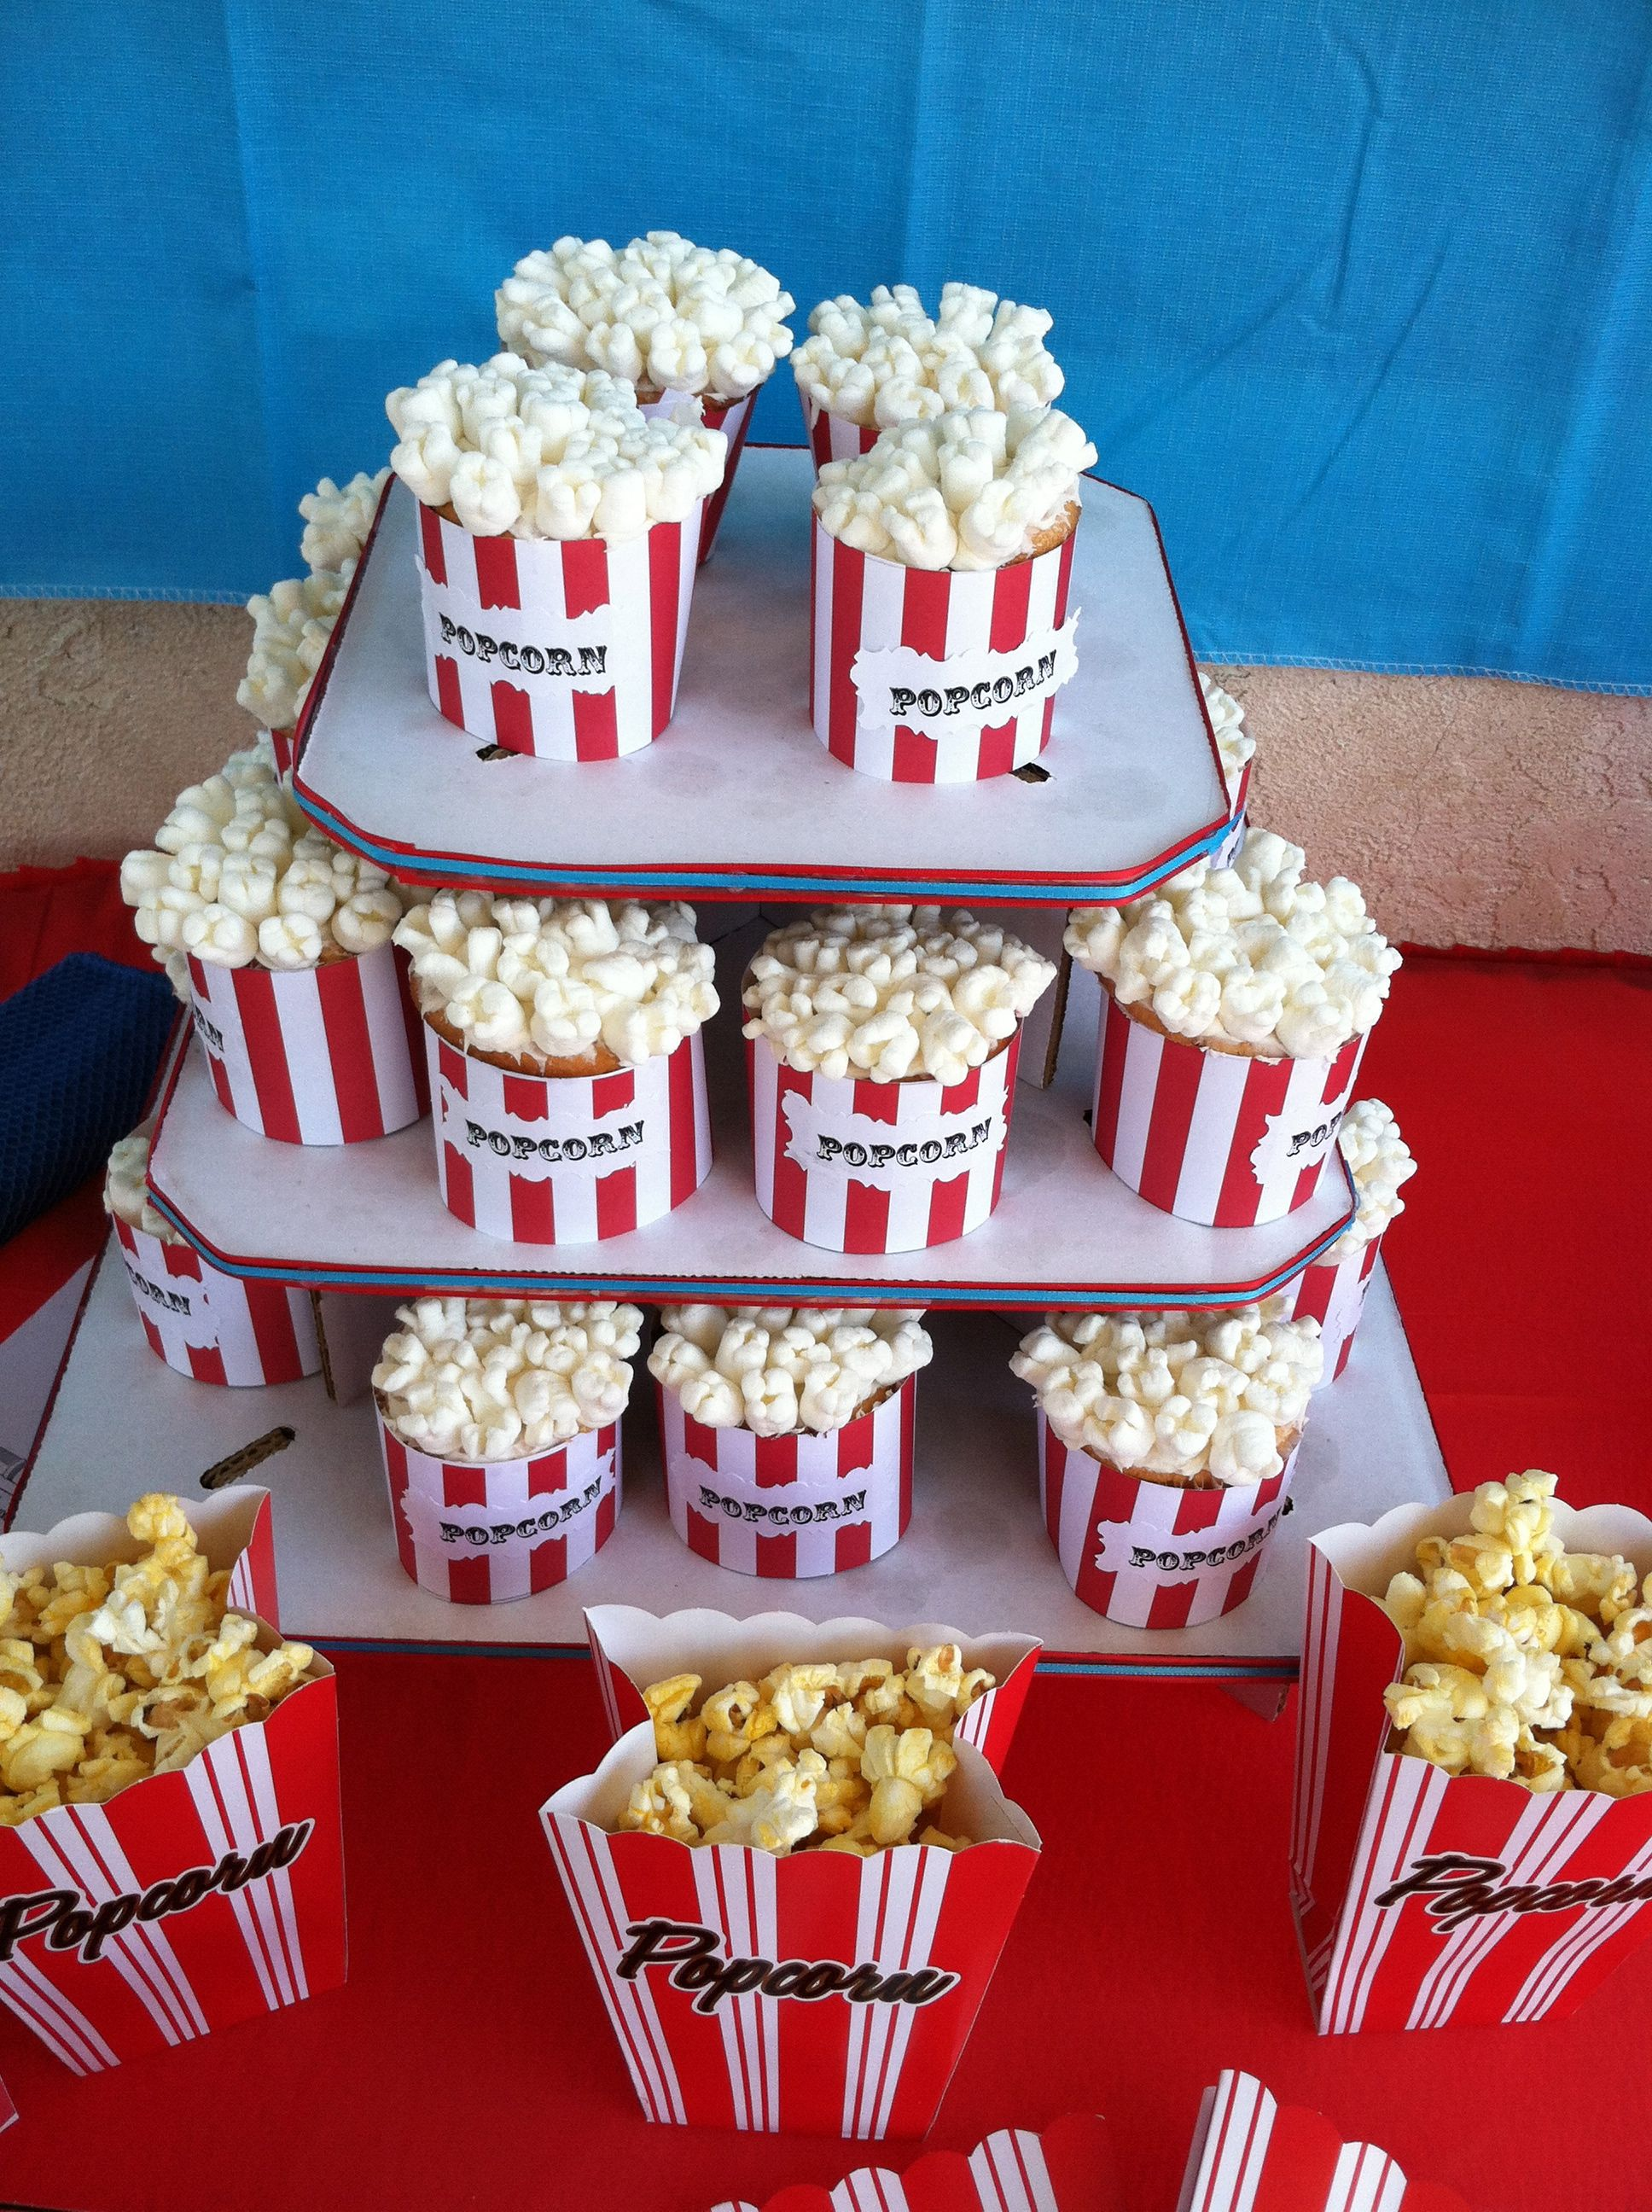 marshmallow cupcakes made to look like popcorn